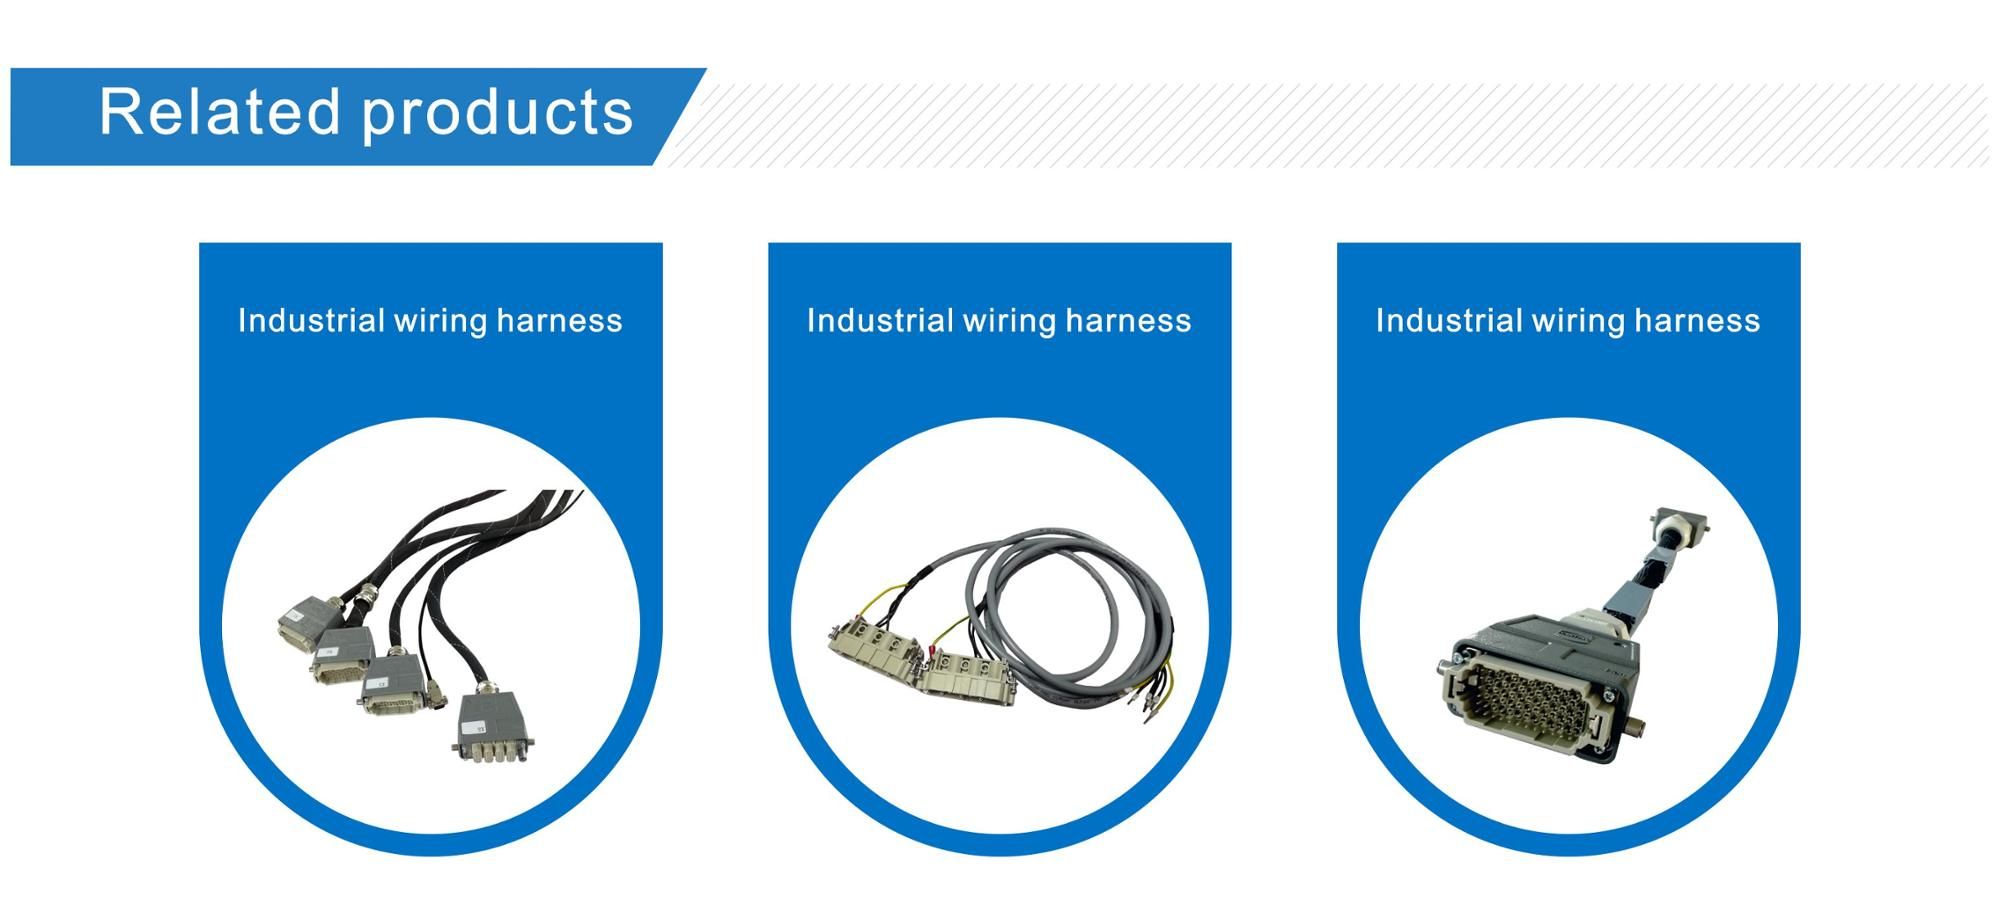 hight resolution of harting han modular rj45 rangierfeld 2p industrial wire harness for industrial robot